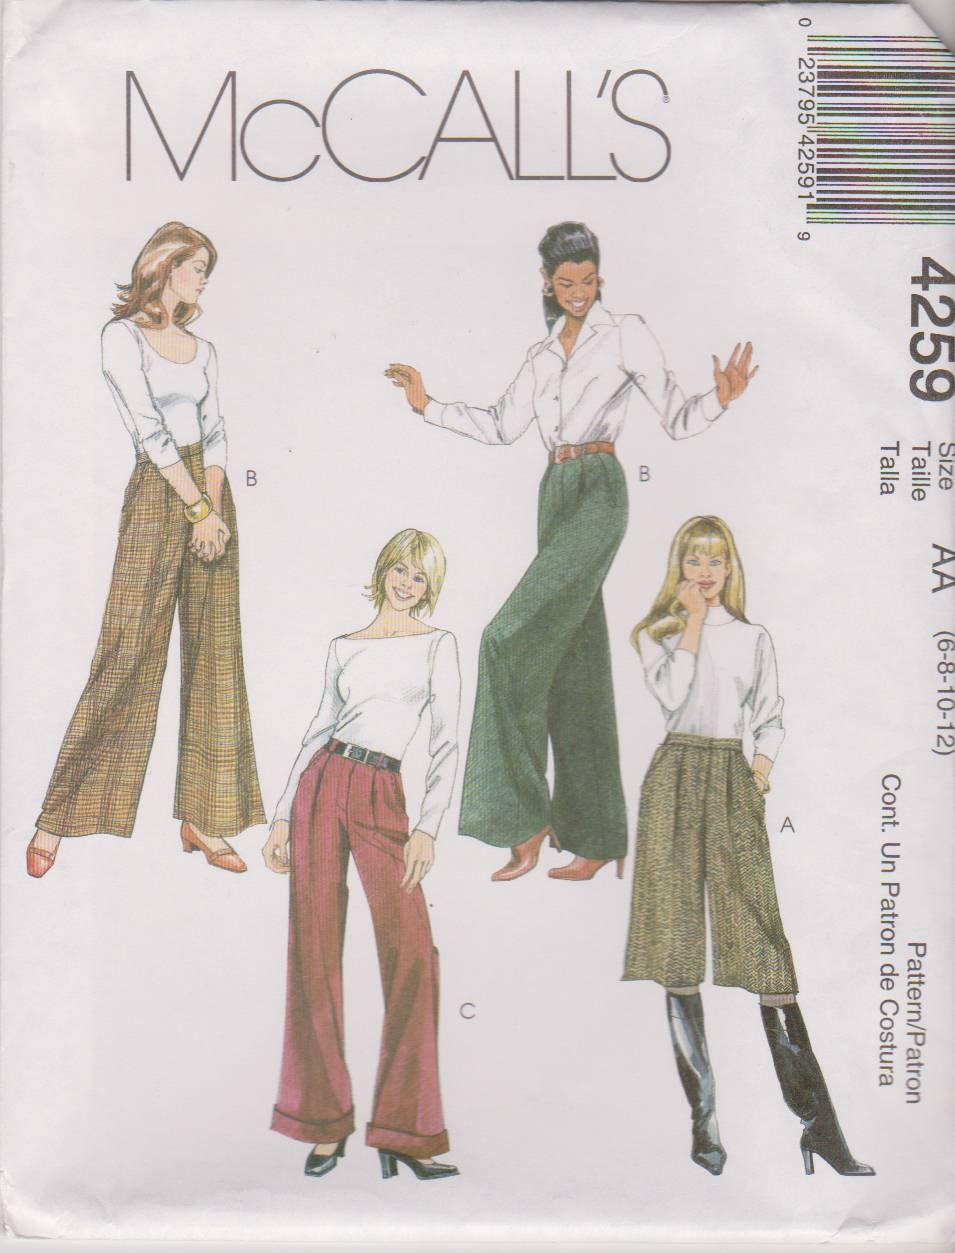 McCall's Sewing Pattern 4259 M4259 Misses Size 6-12 Pleated Pants Trousers Slacks Culottes Gauchos